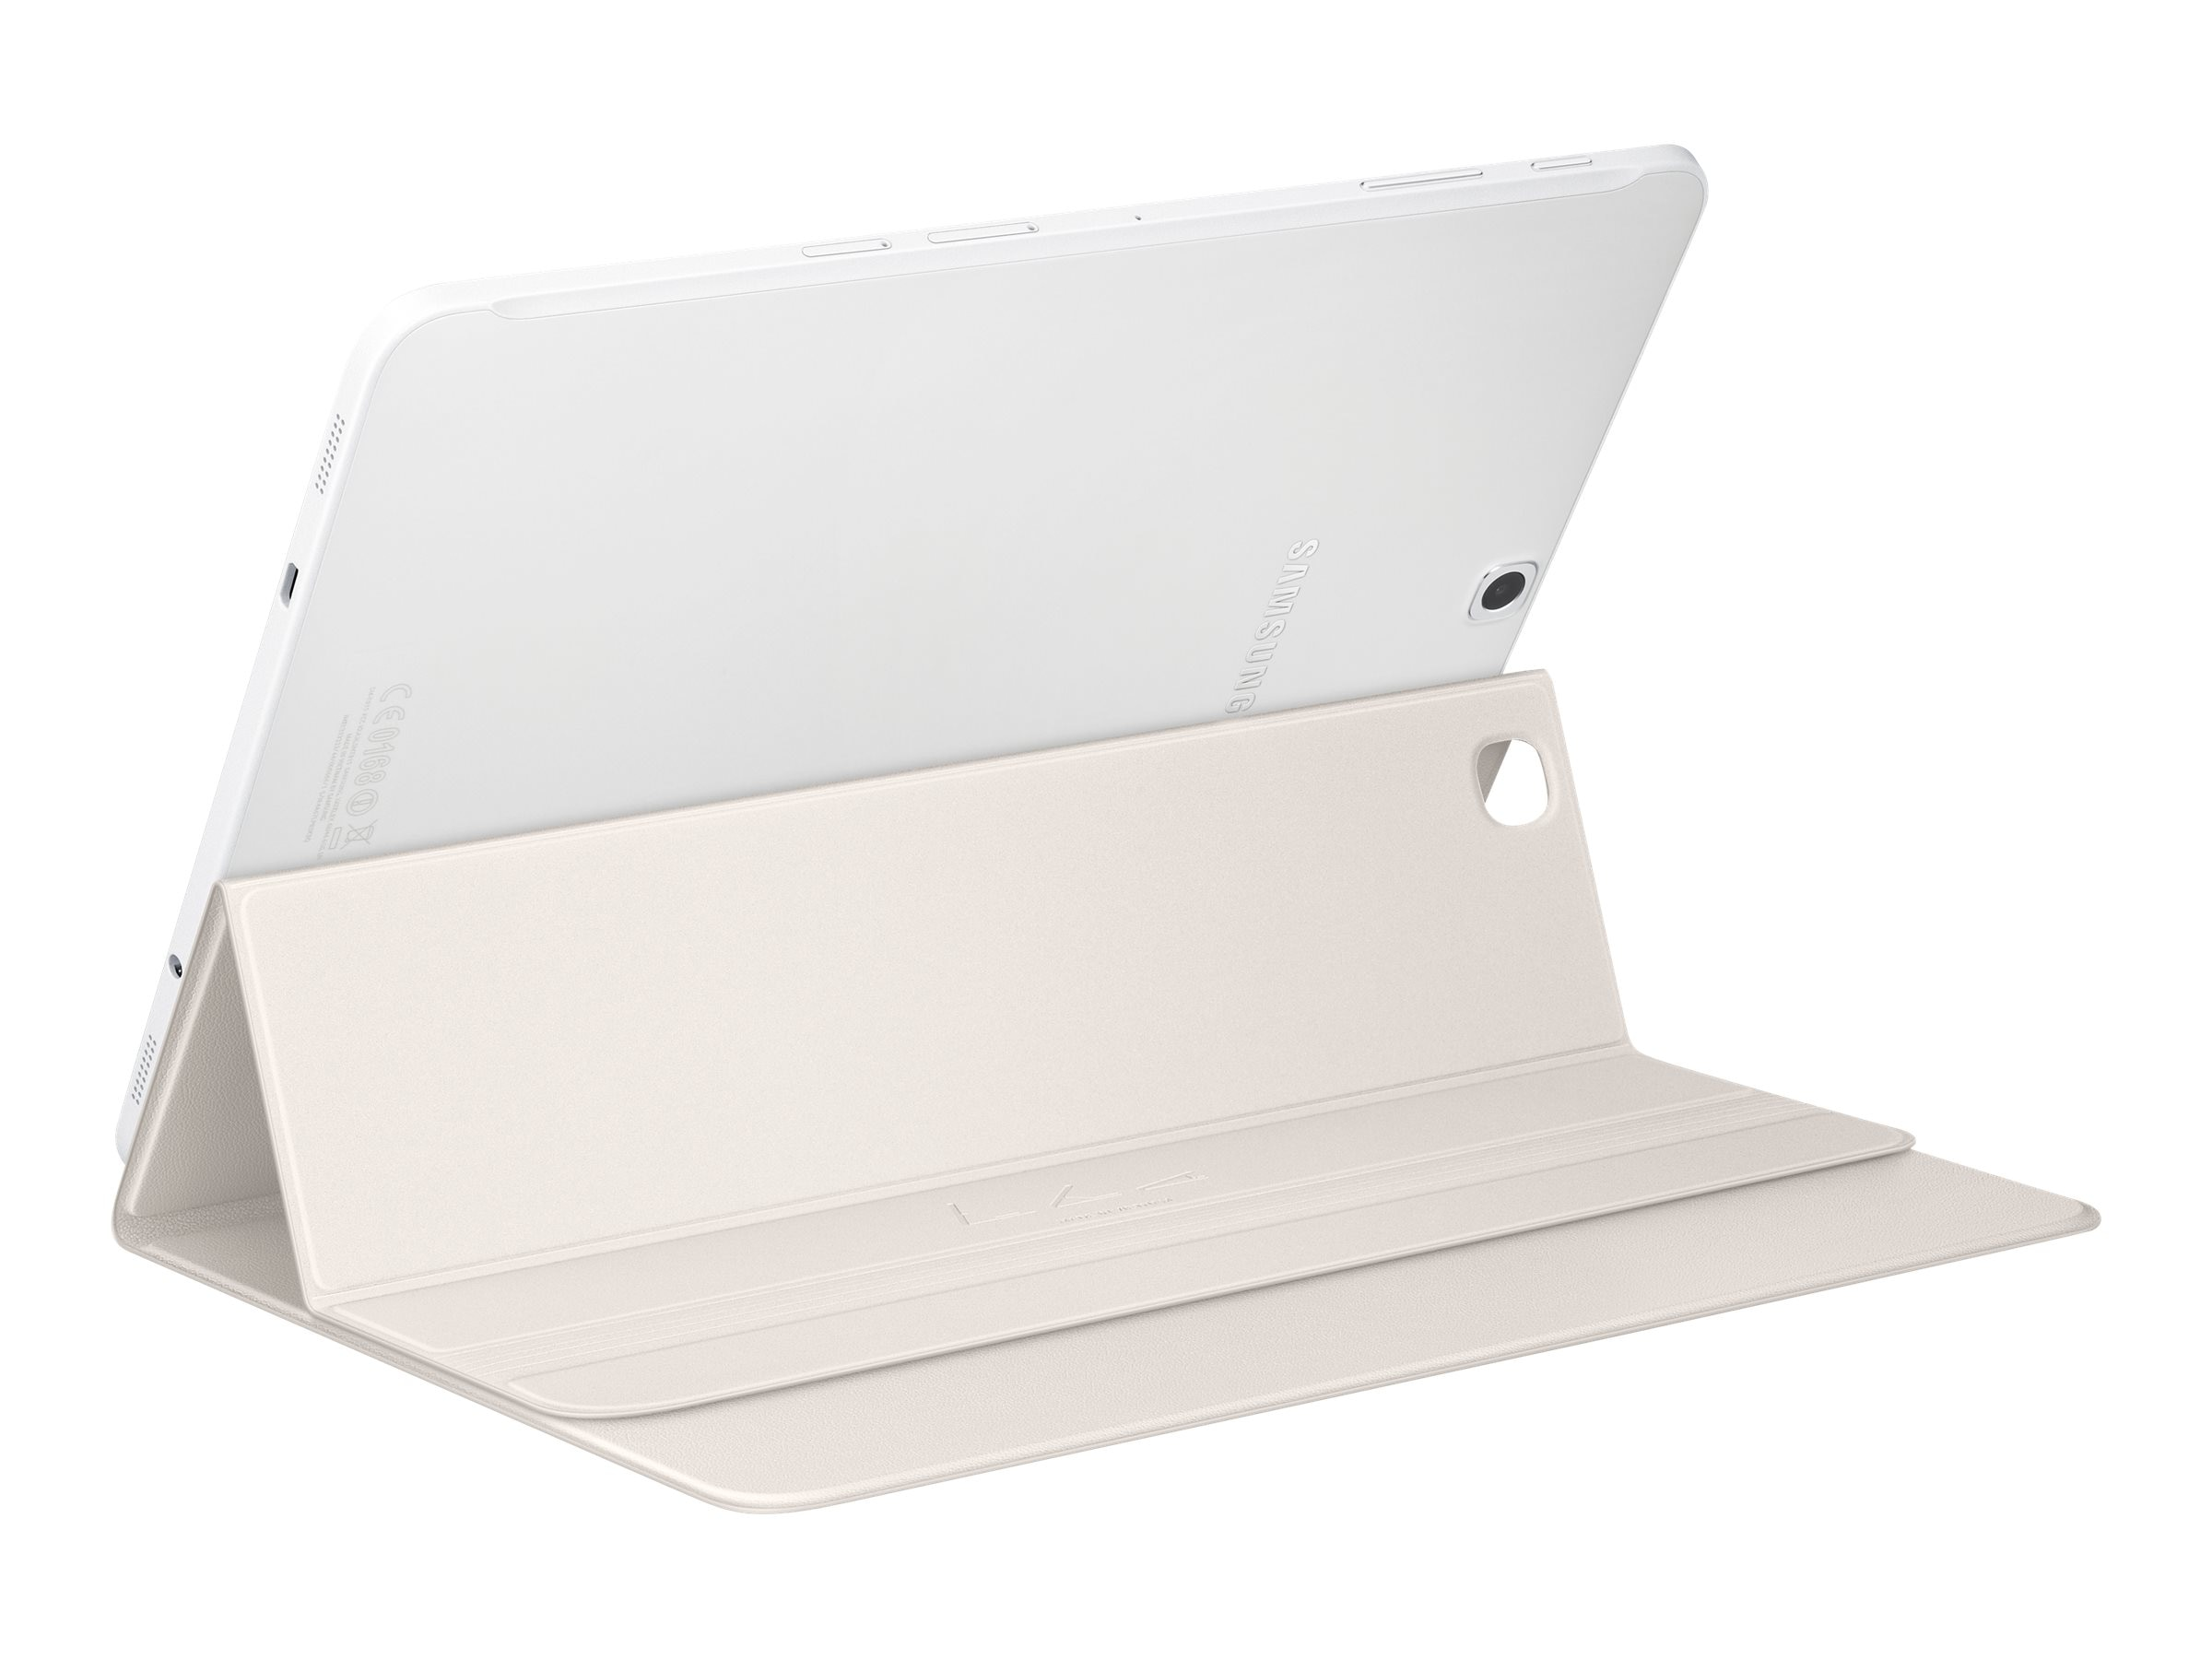 Samsung Book Cover for Galaxy Tab S2 9.7, White